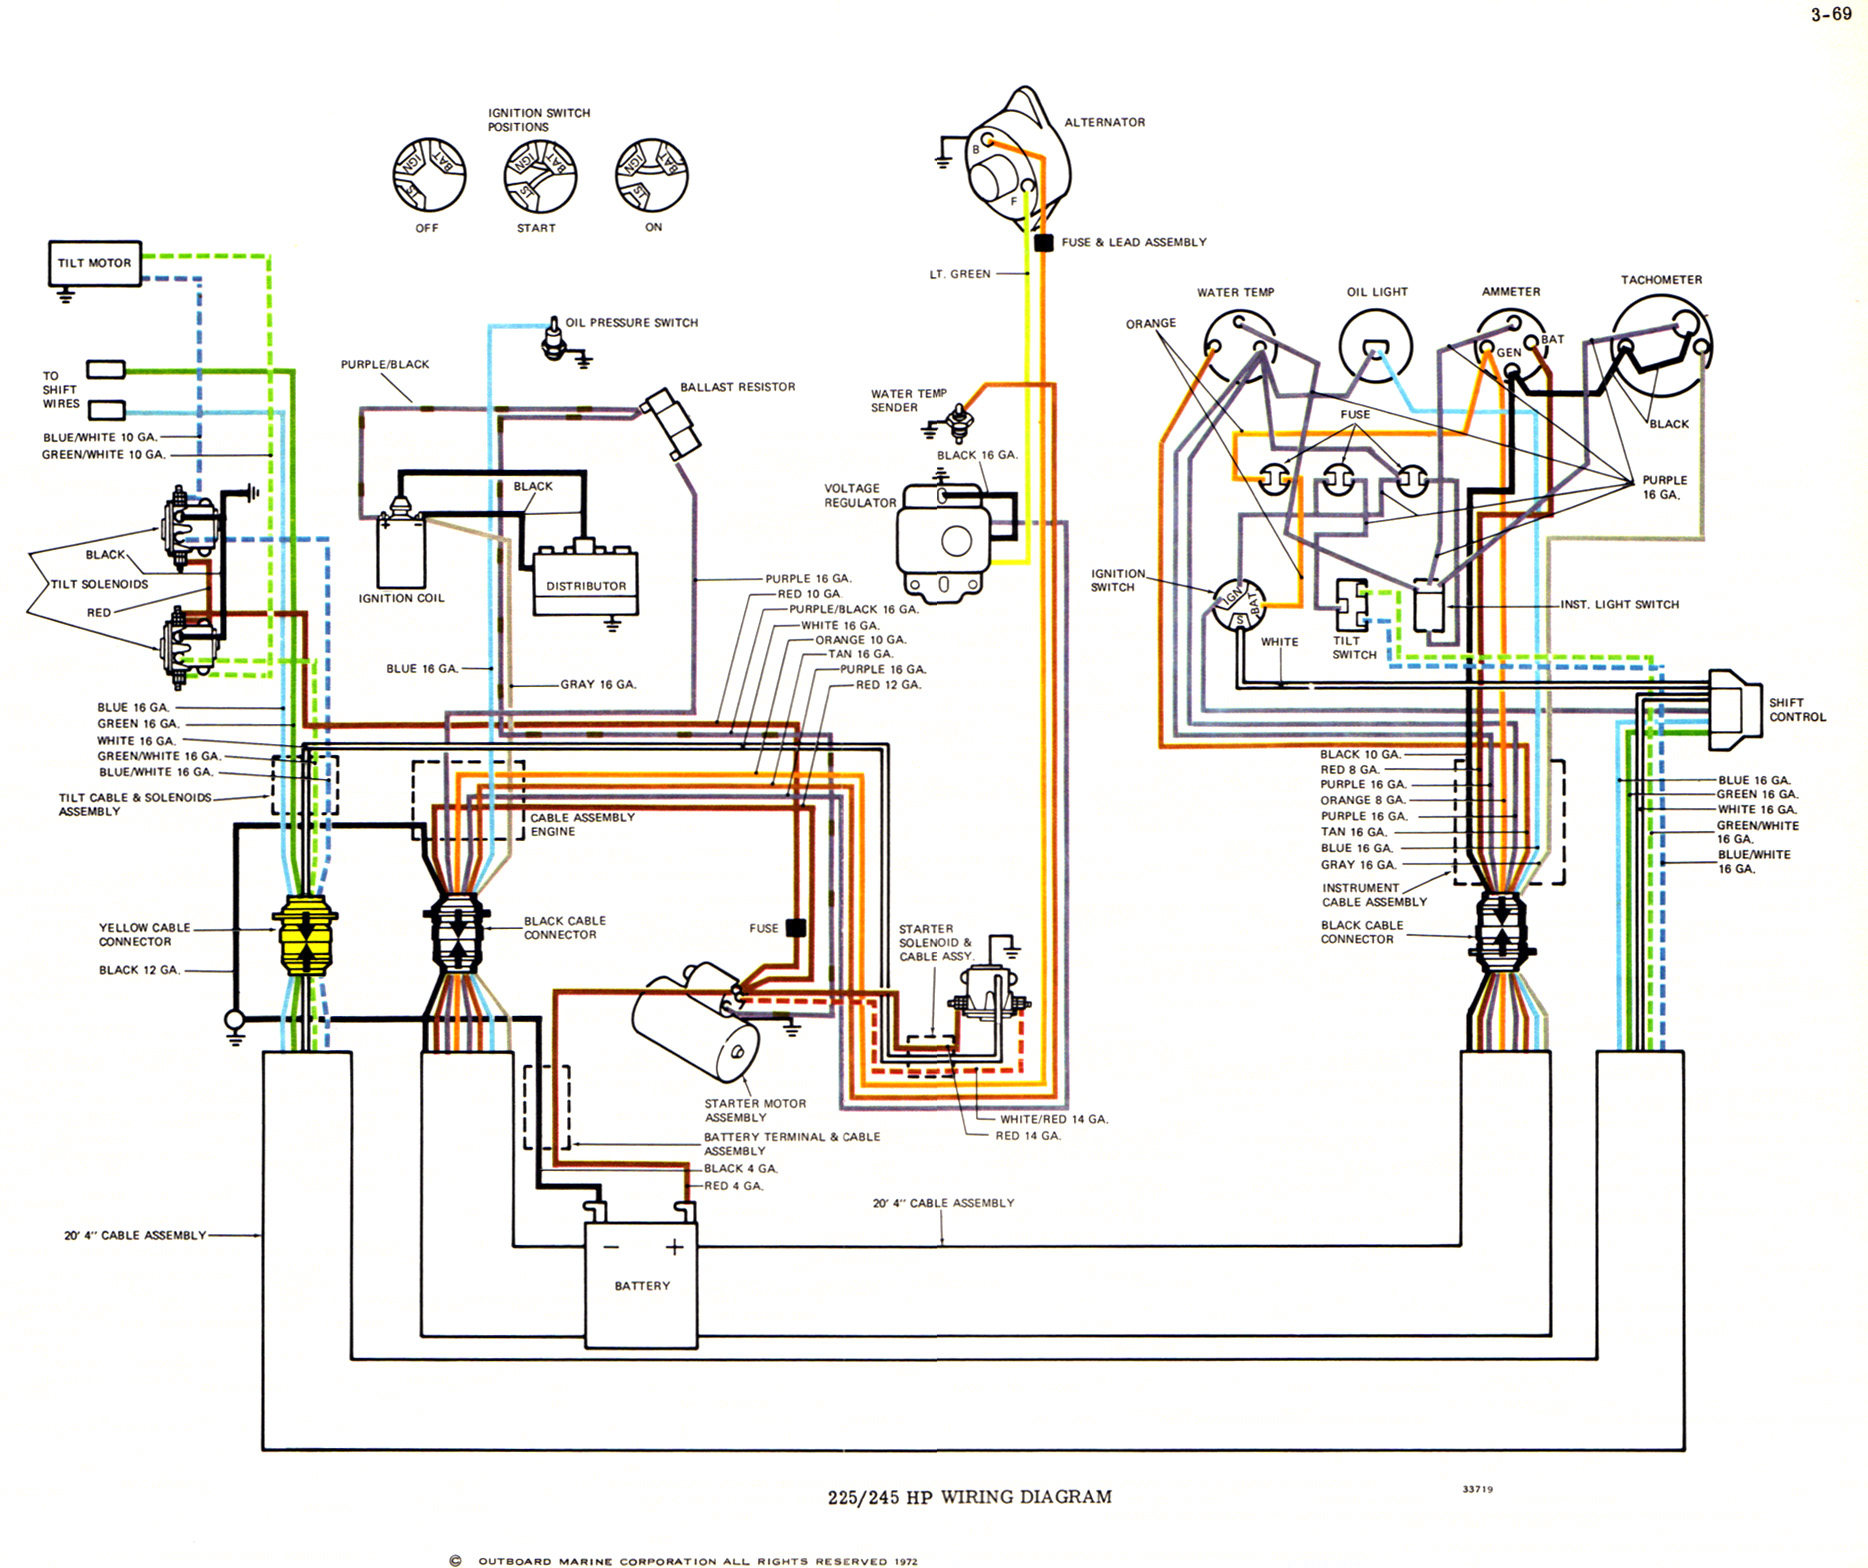 73_OMC_V8_all_big omc wiring diagram basic boat wiring schematic \u2022 wiring diagrams Alternator Adapter Harness at reclaimingppi.co